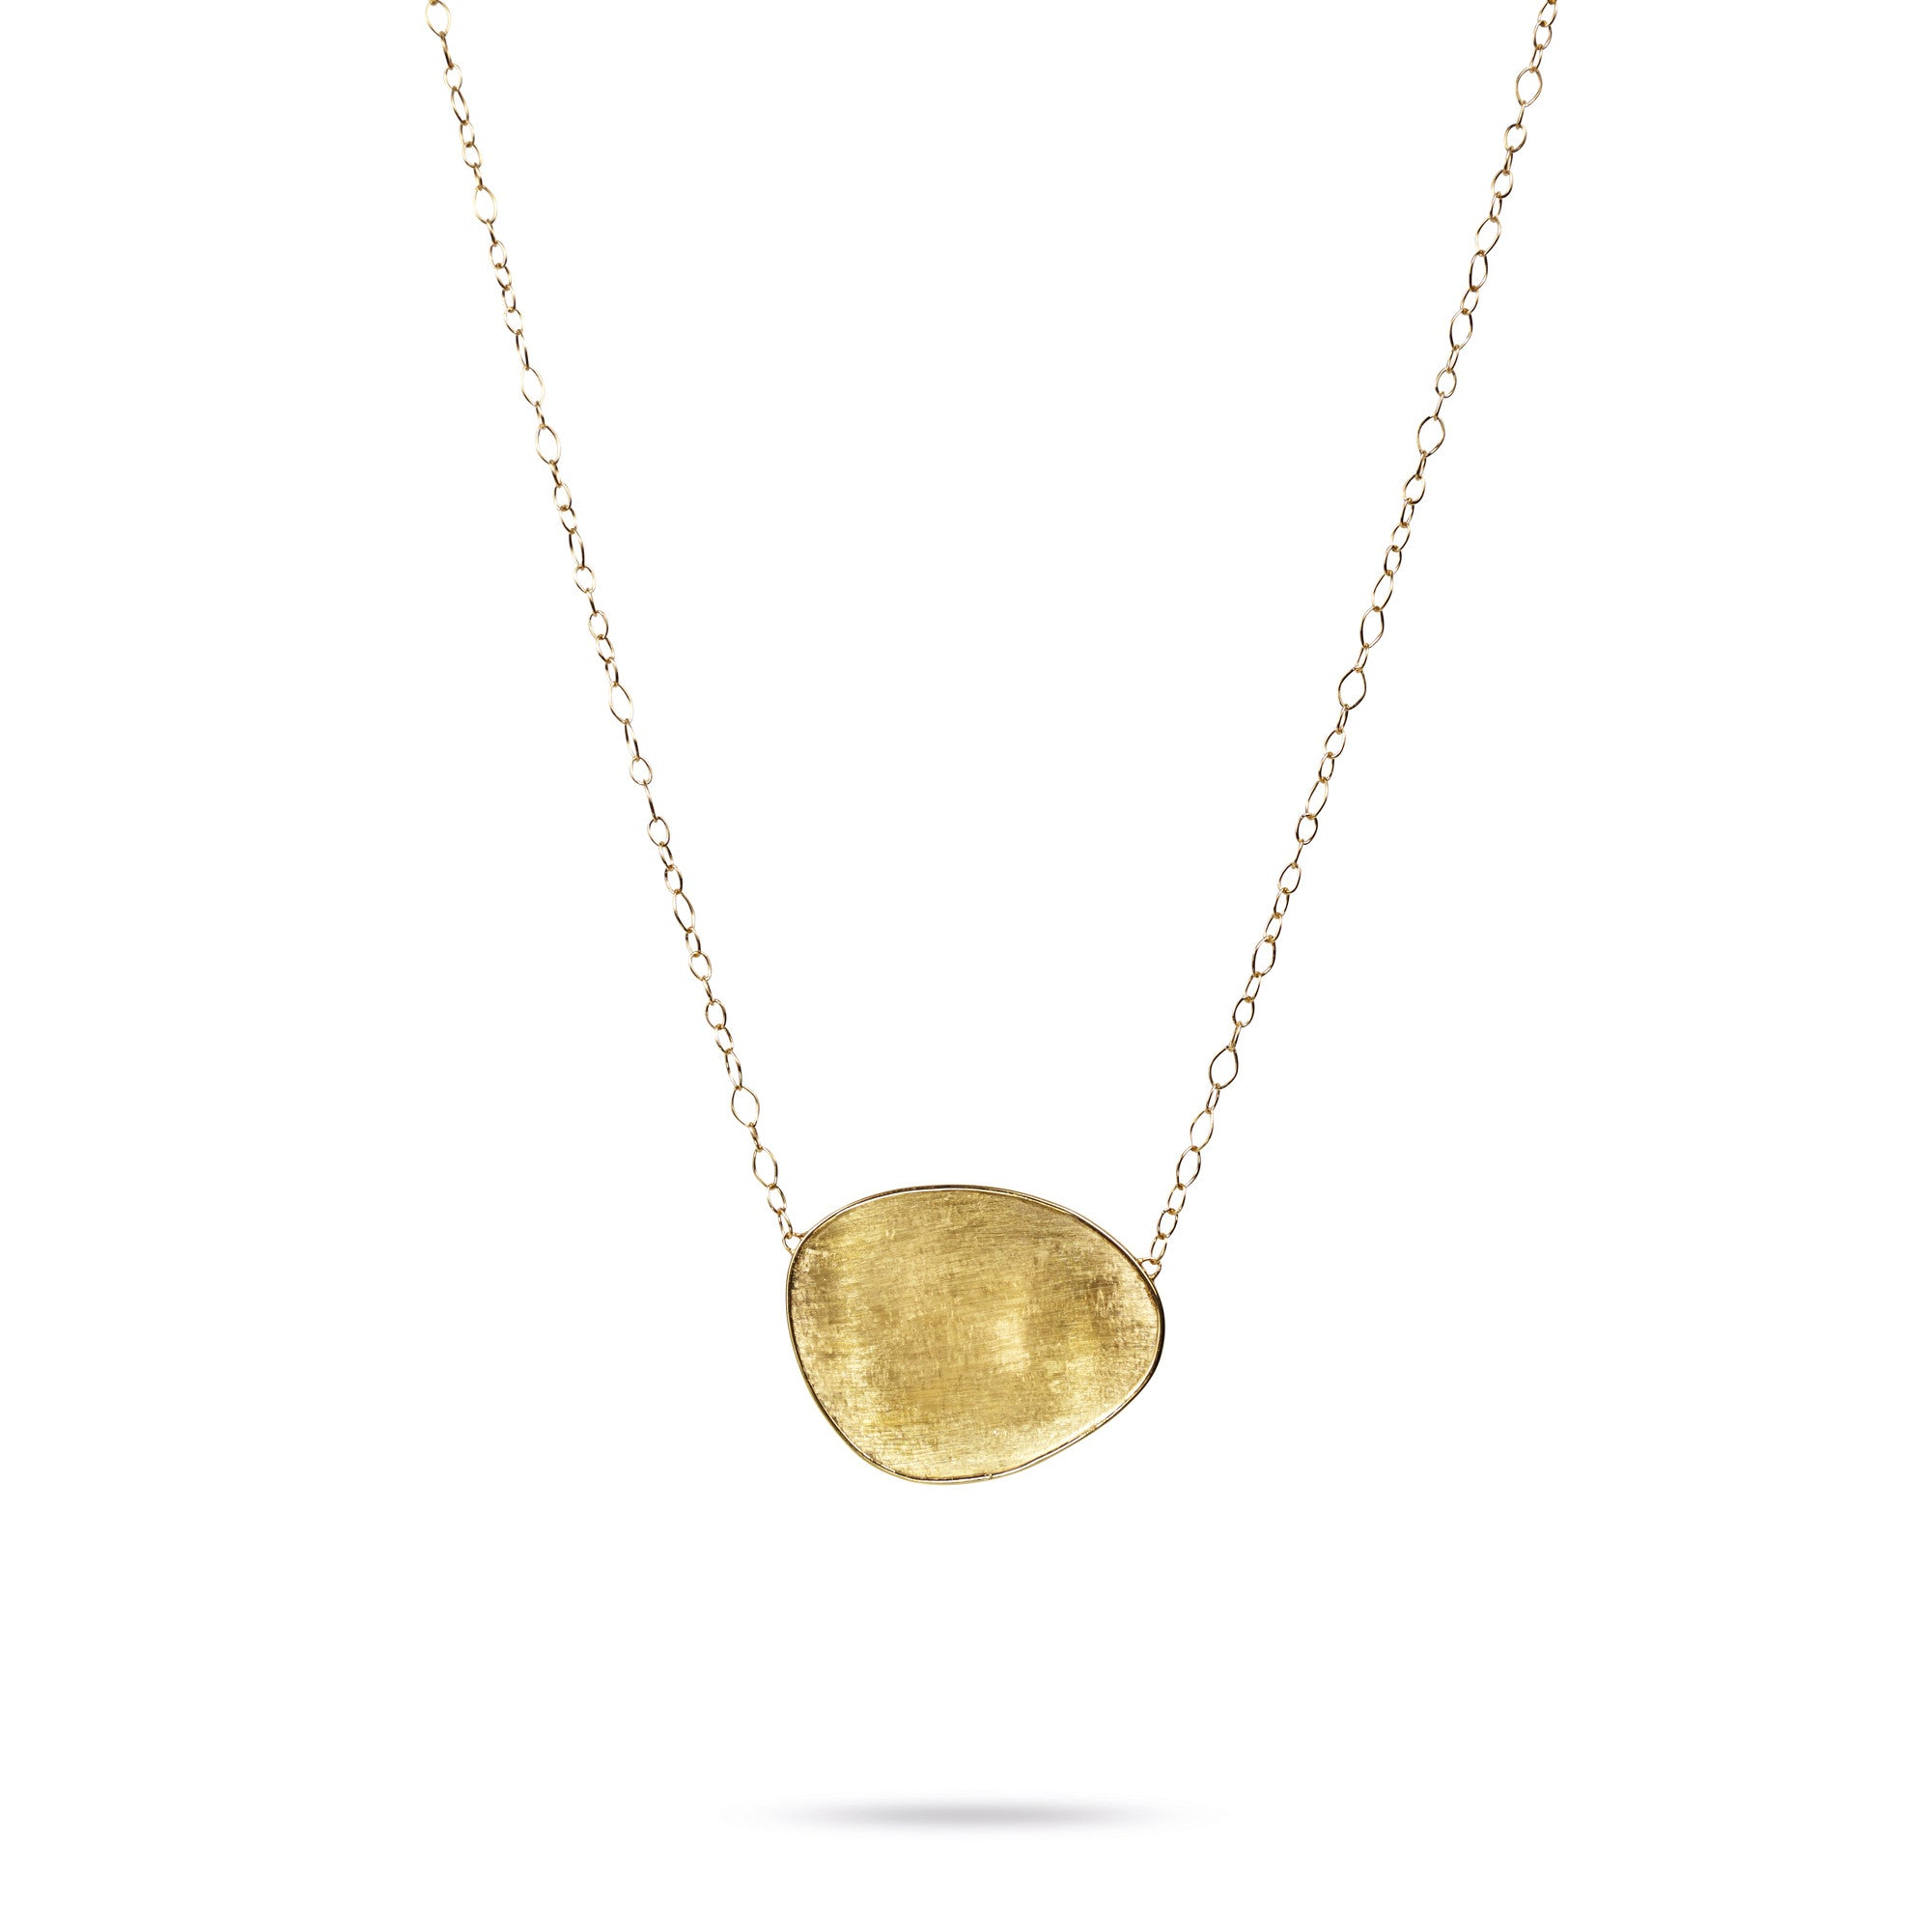 18K Yellow Gold Large Pendant